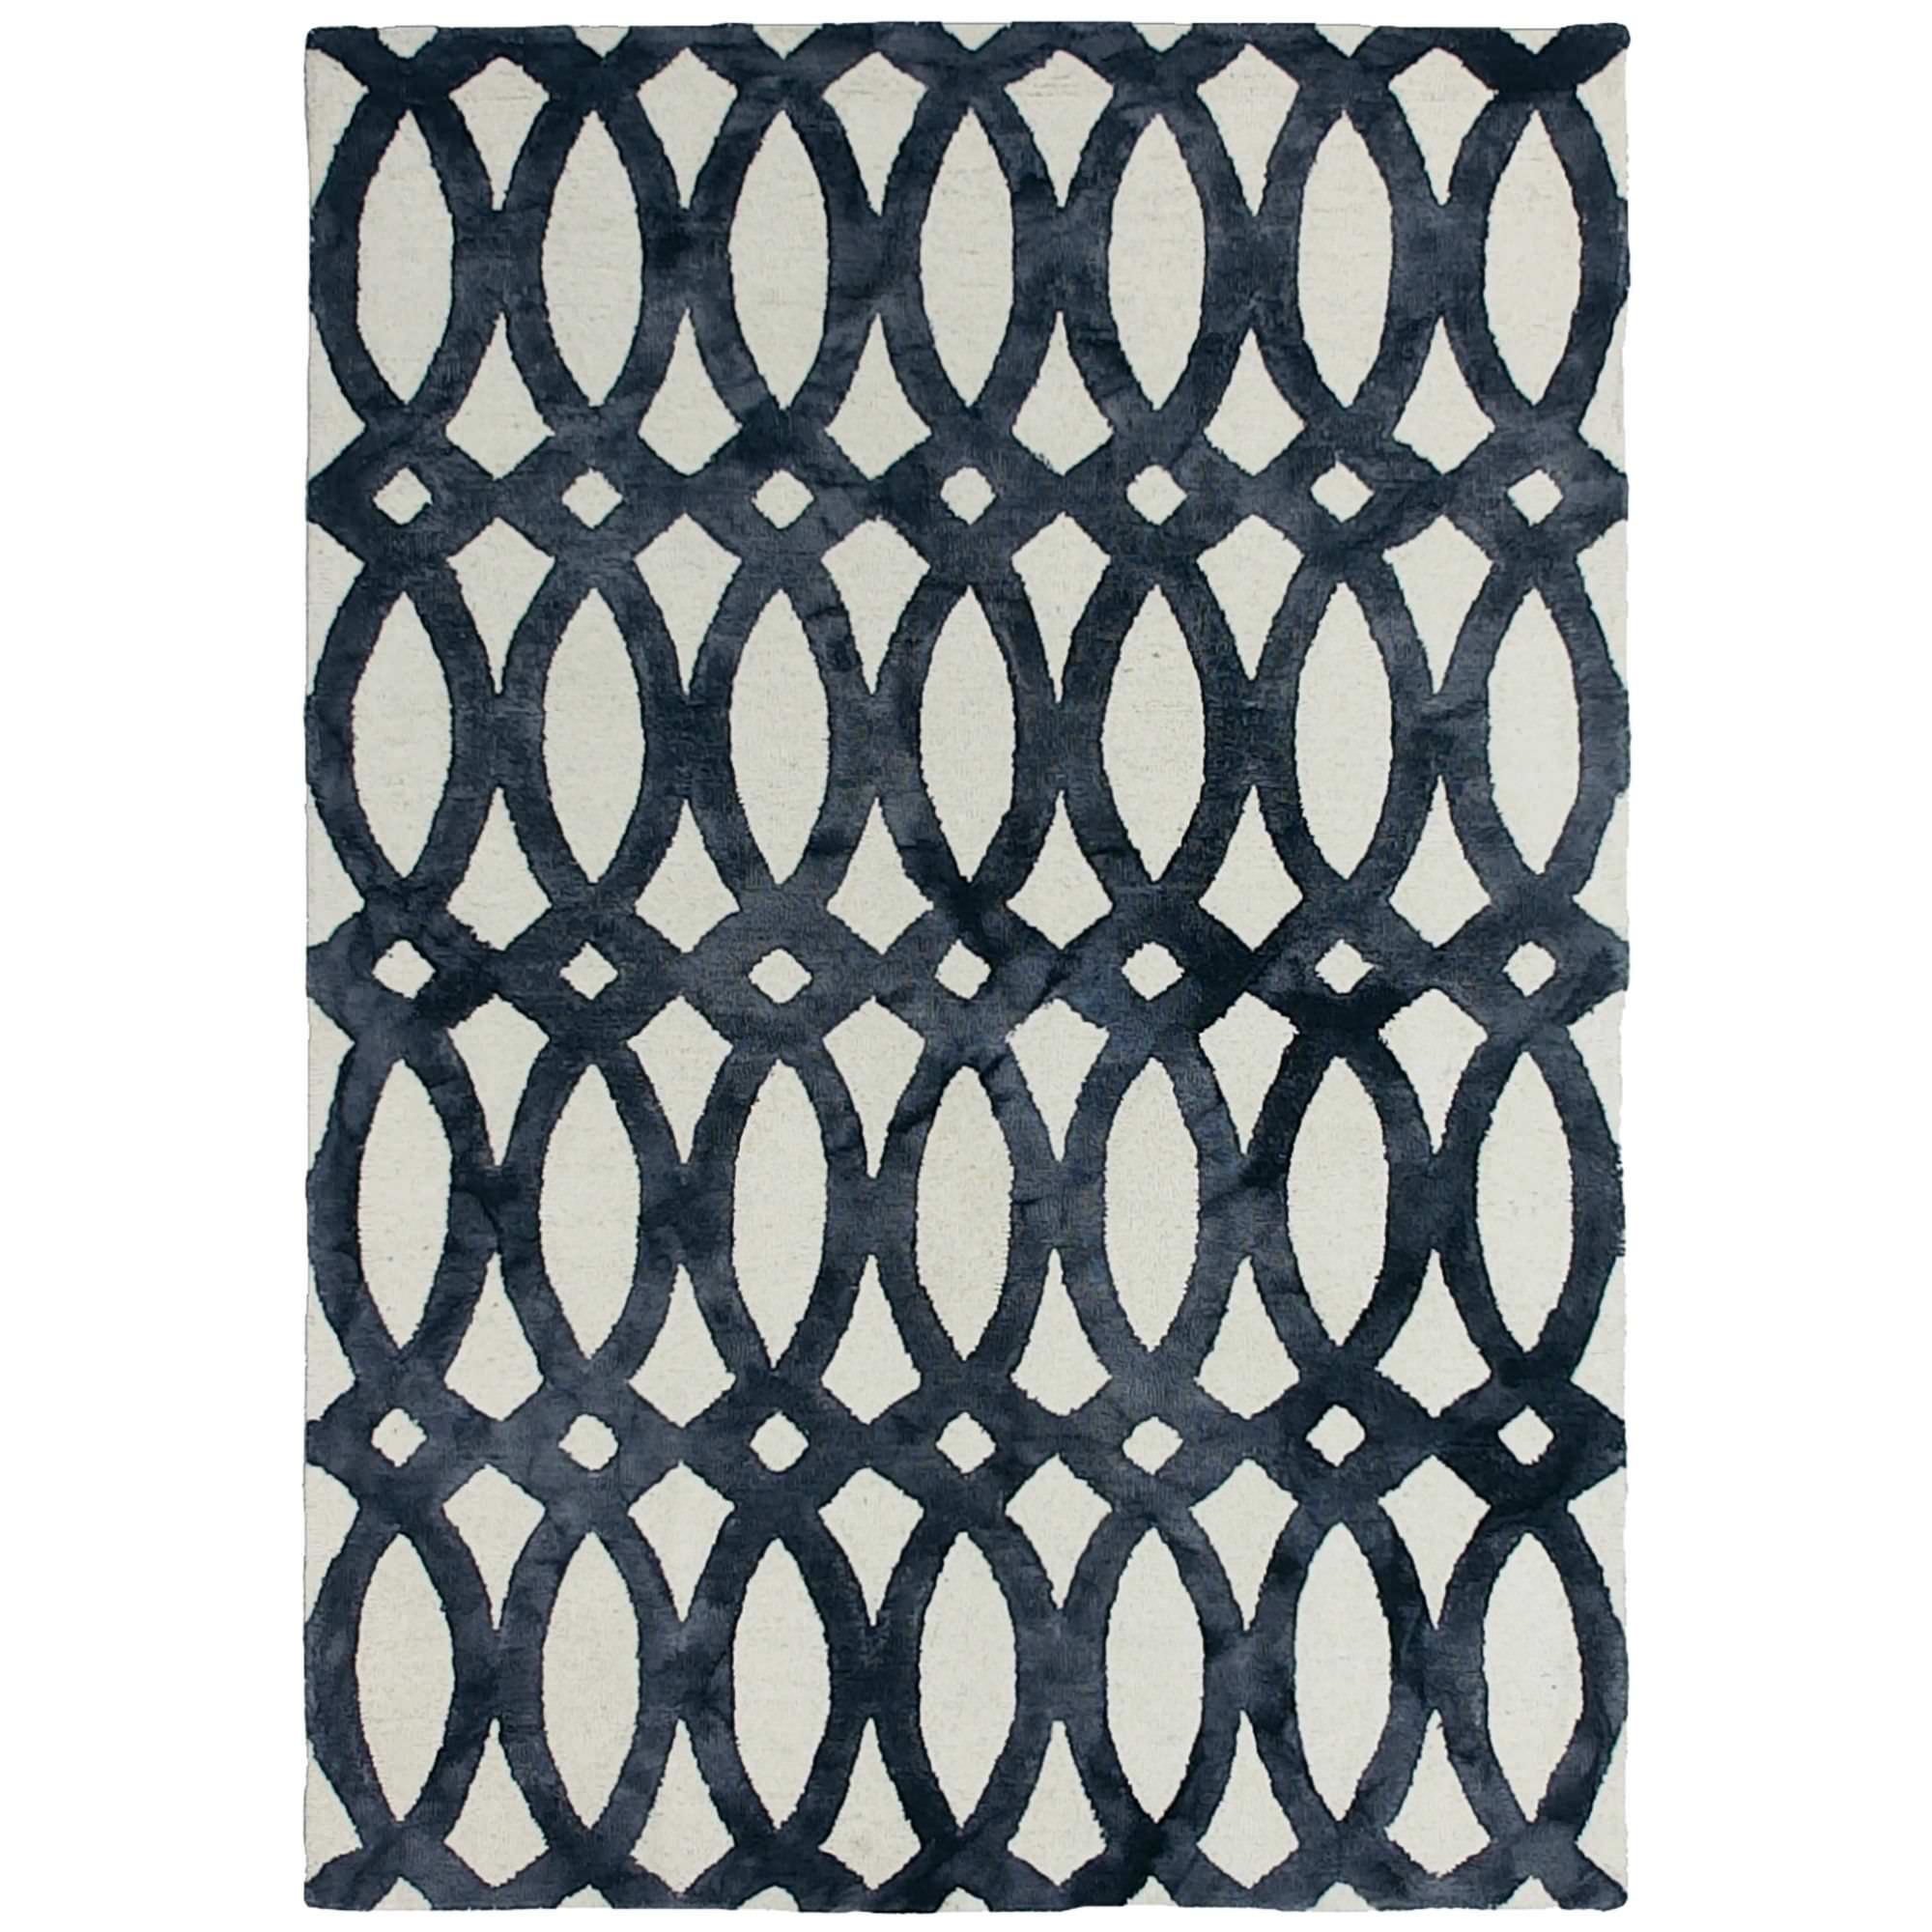 Dip Dye Hand Tufted Wool Rug, 250x300cm, Charcoal